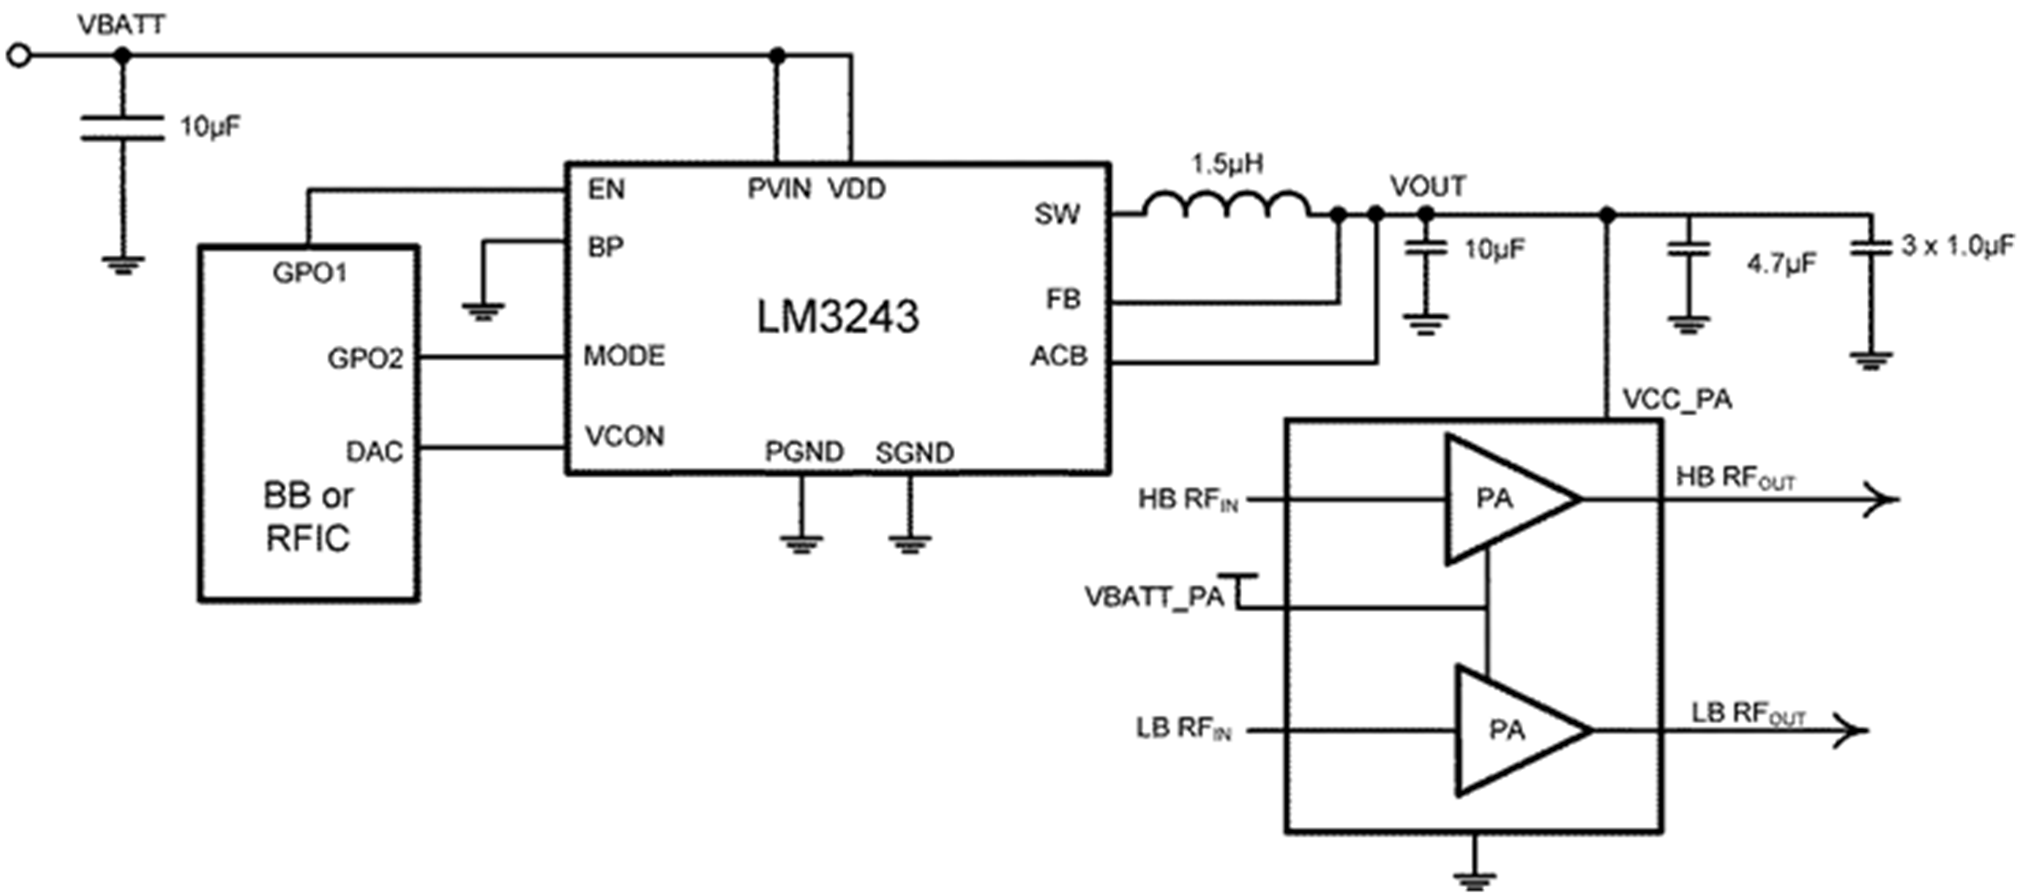 Lm3243 Figure 1 First Rf Amplifier Module A3 Schematic Diagram Lm3243rf Noi136 27 Simplified Evaluation Board